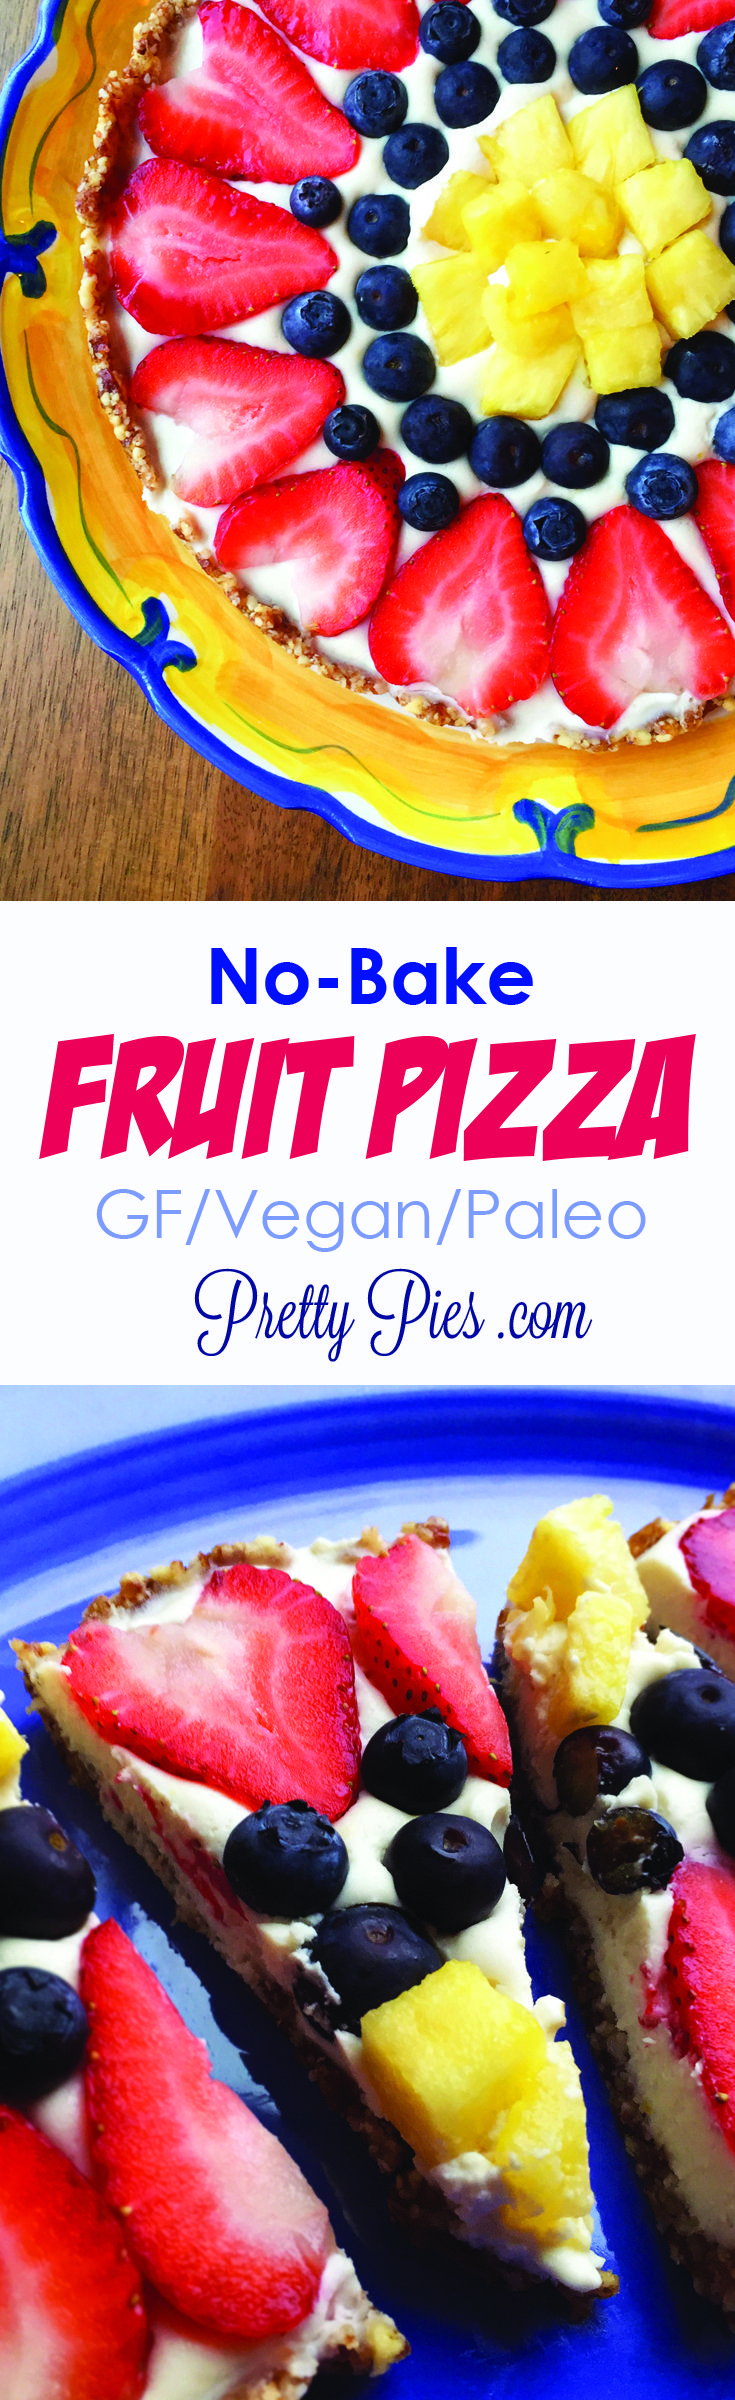 Best 25 no processed food diet ideas on pinterest challenge a real food fruit pizza nothing processed amazingly chewy cookie crust with a thick layer of lemon frosting no gluten dairy grains or refined sugar forumfinder Images